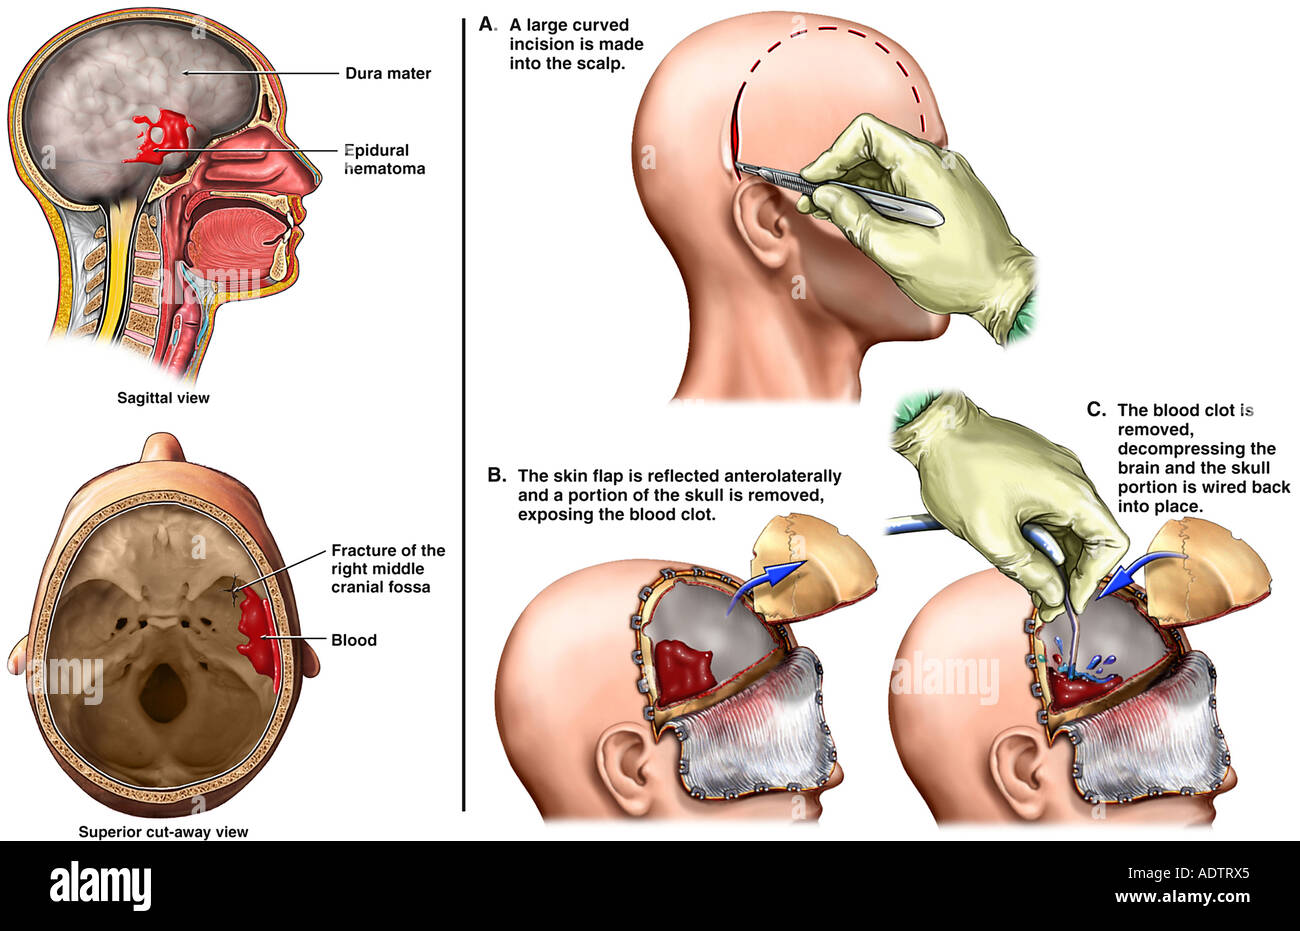 Brain Surgery - Severe Post-accident Head Injury with Removal of ...